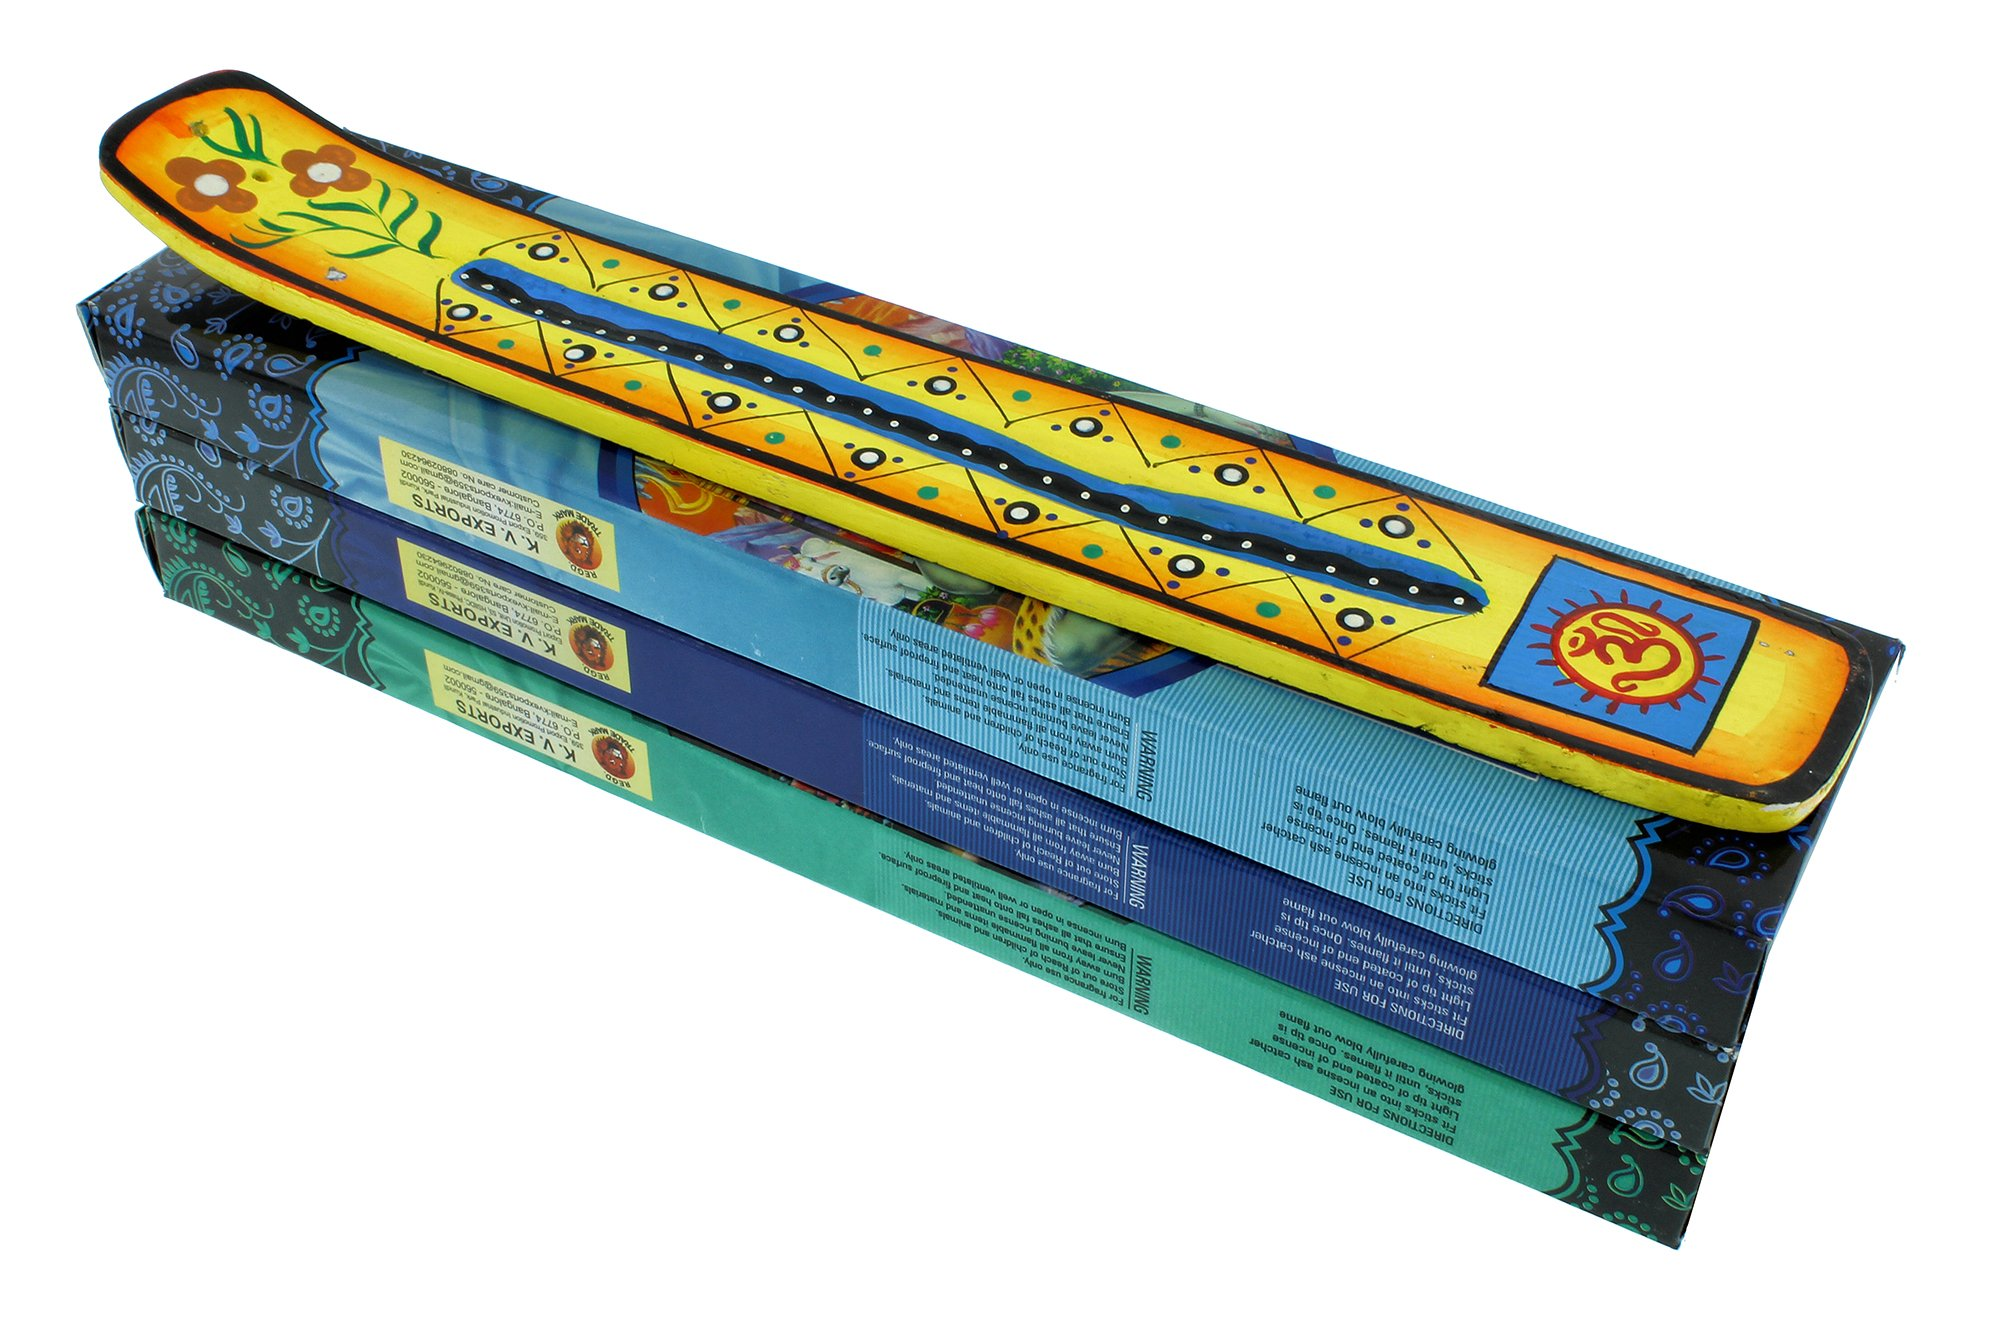 Zen Mood Incense Gift Pack - 3 Boxes of Assorted Indian God Incense and 1 Hand Painted Incense Holder with Om Design - Yellow